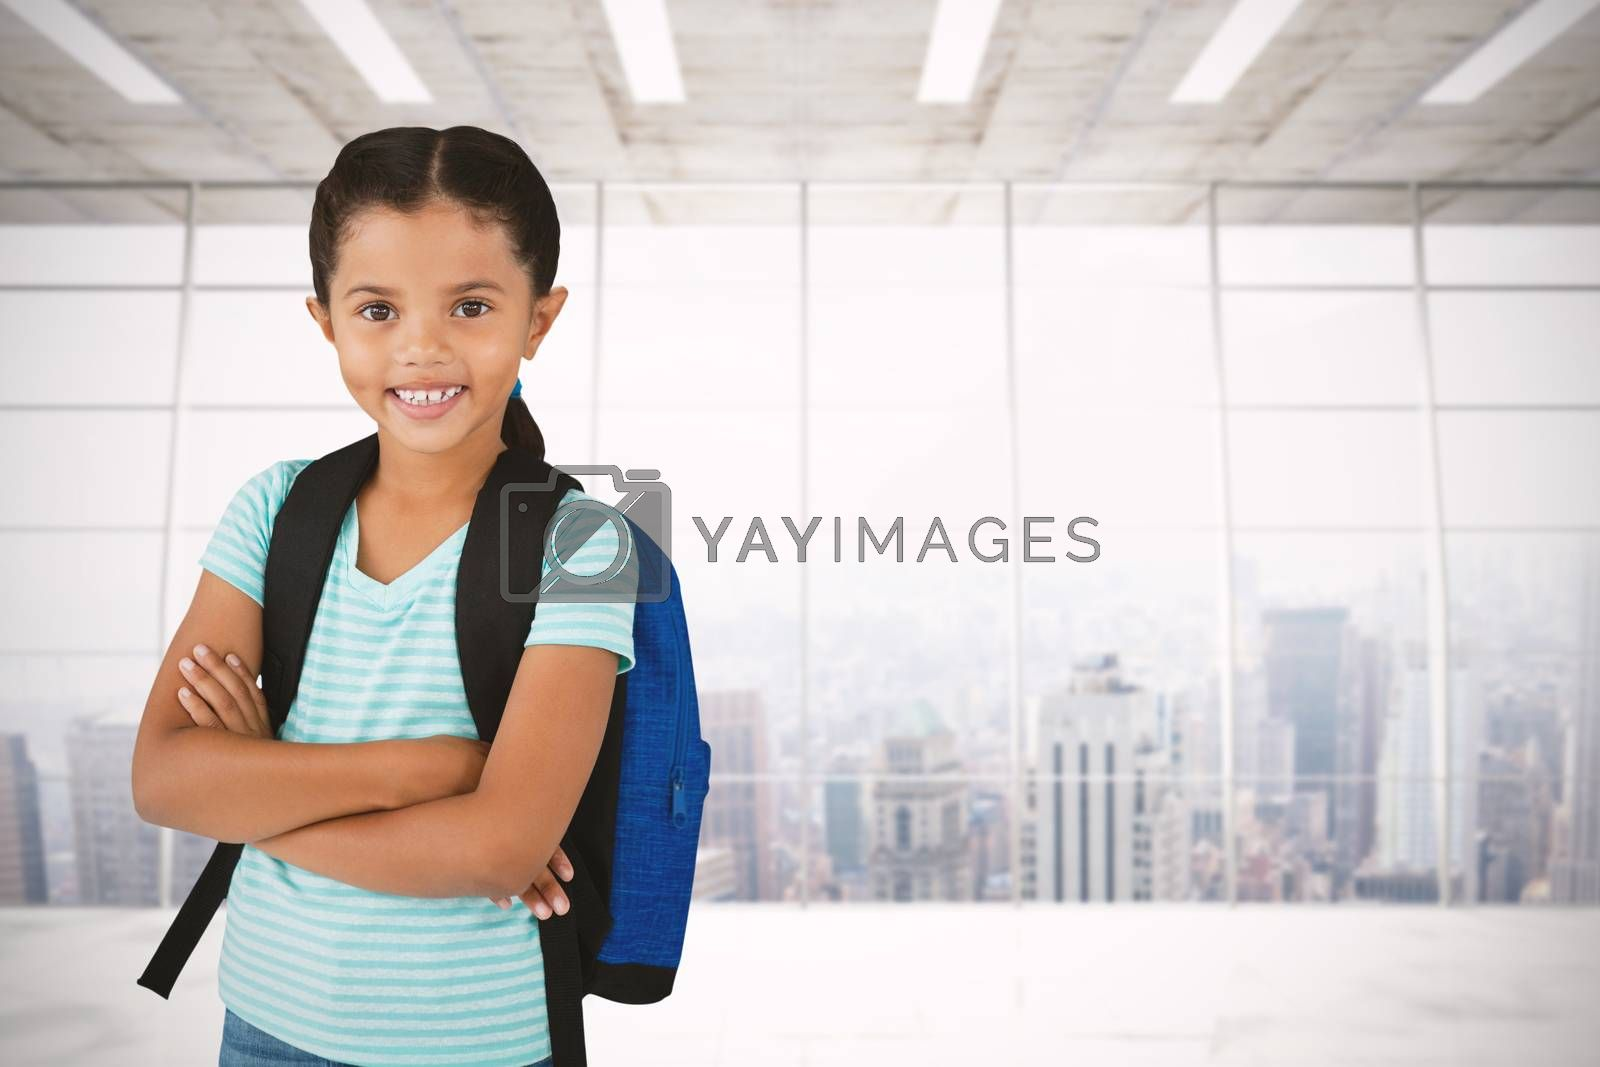 Composite image of portrait of smiling girl with arms crossed carrying bag by Wavebreakmedia